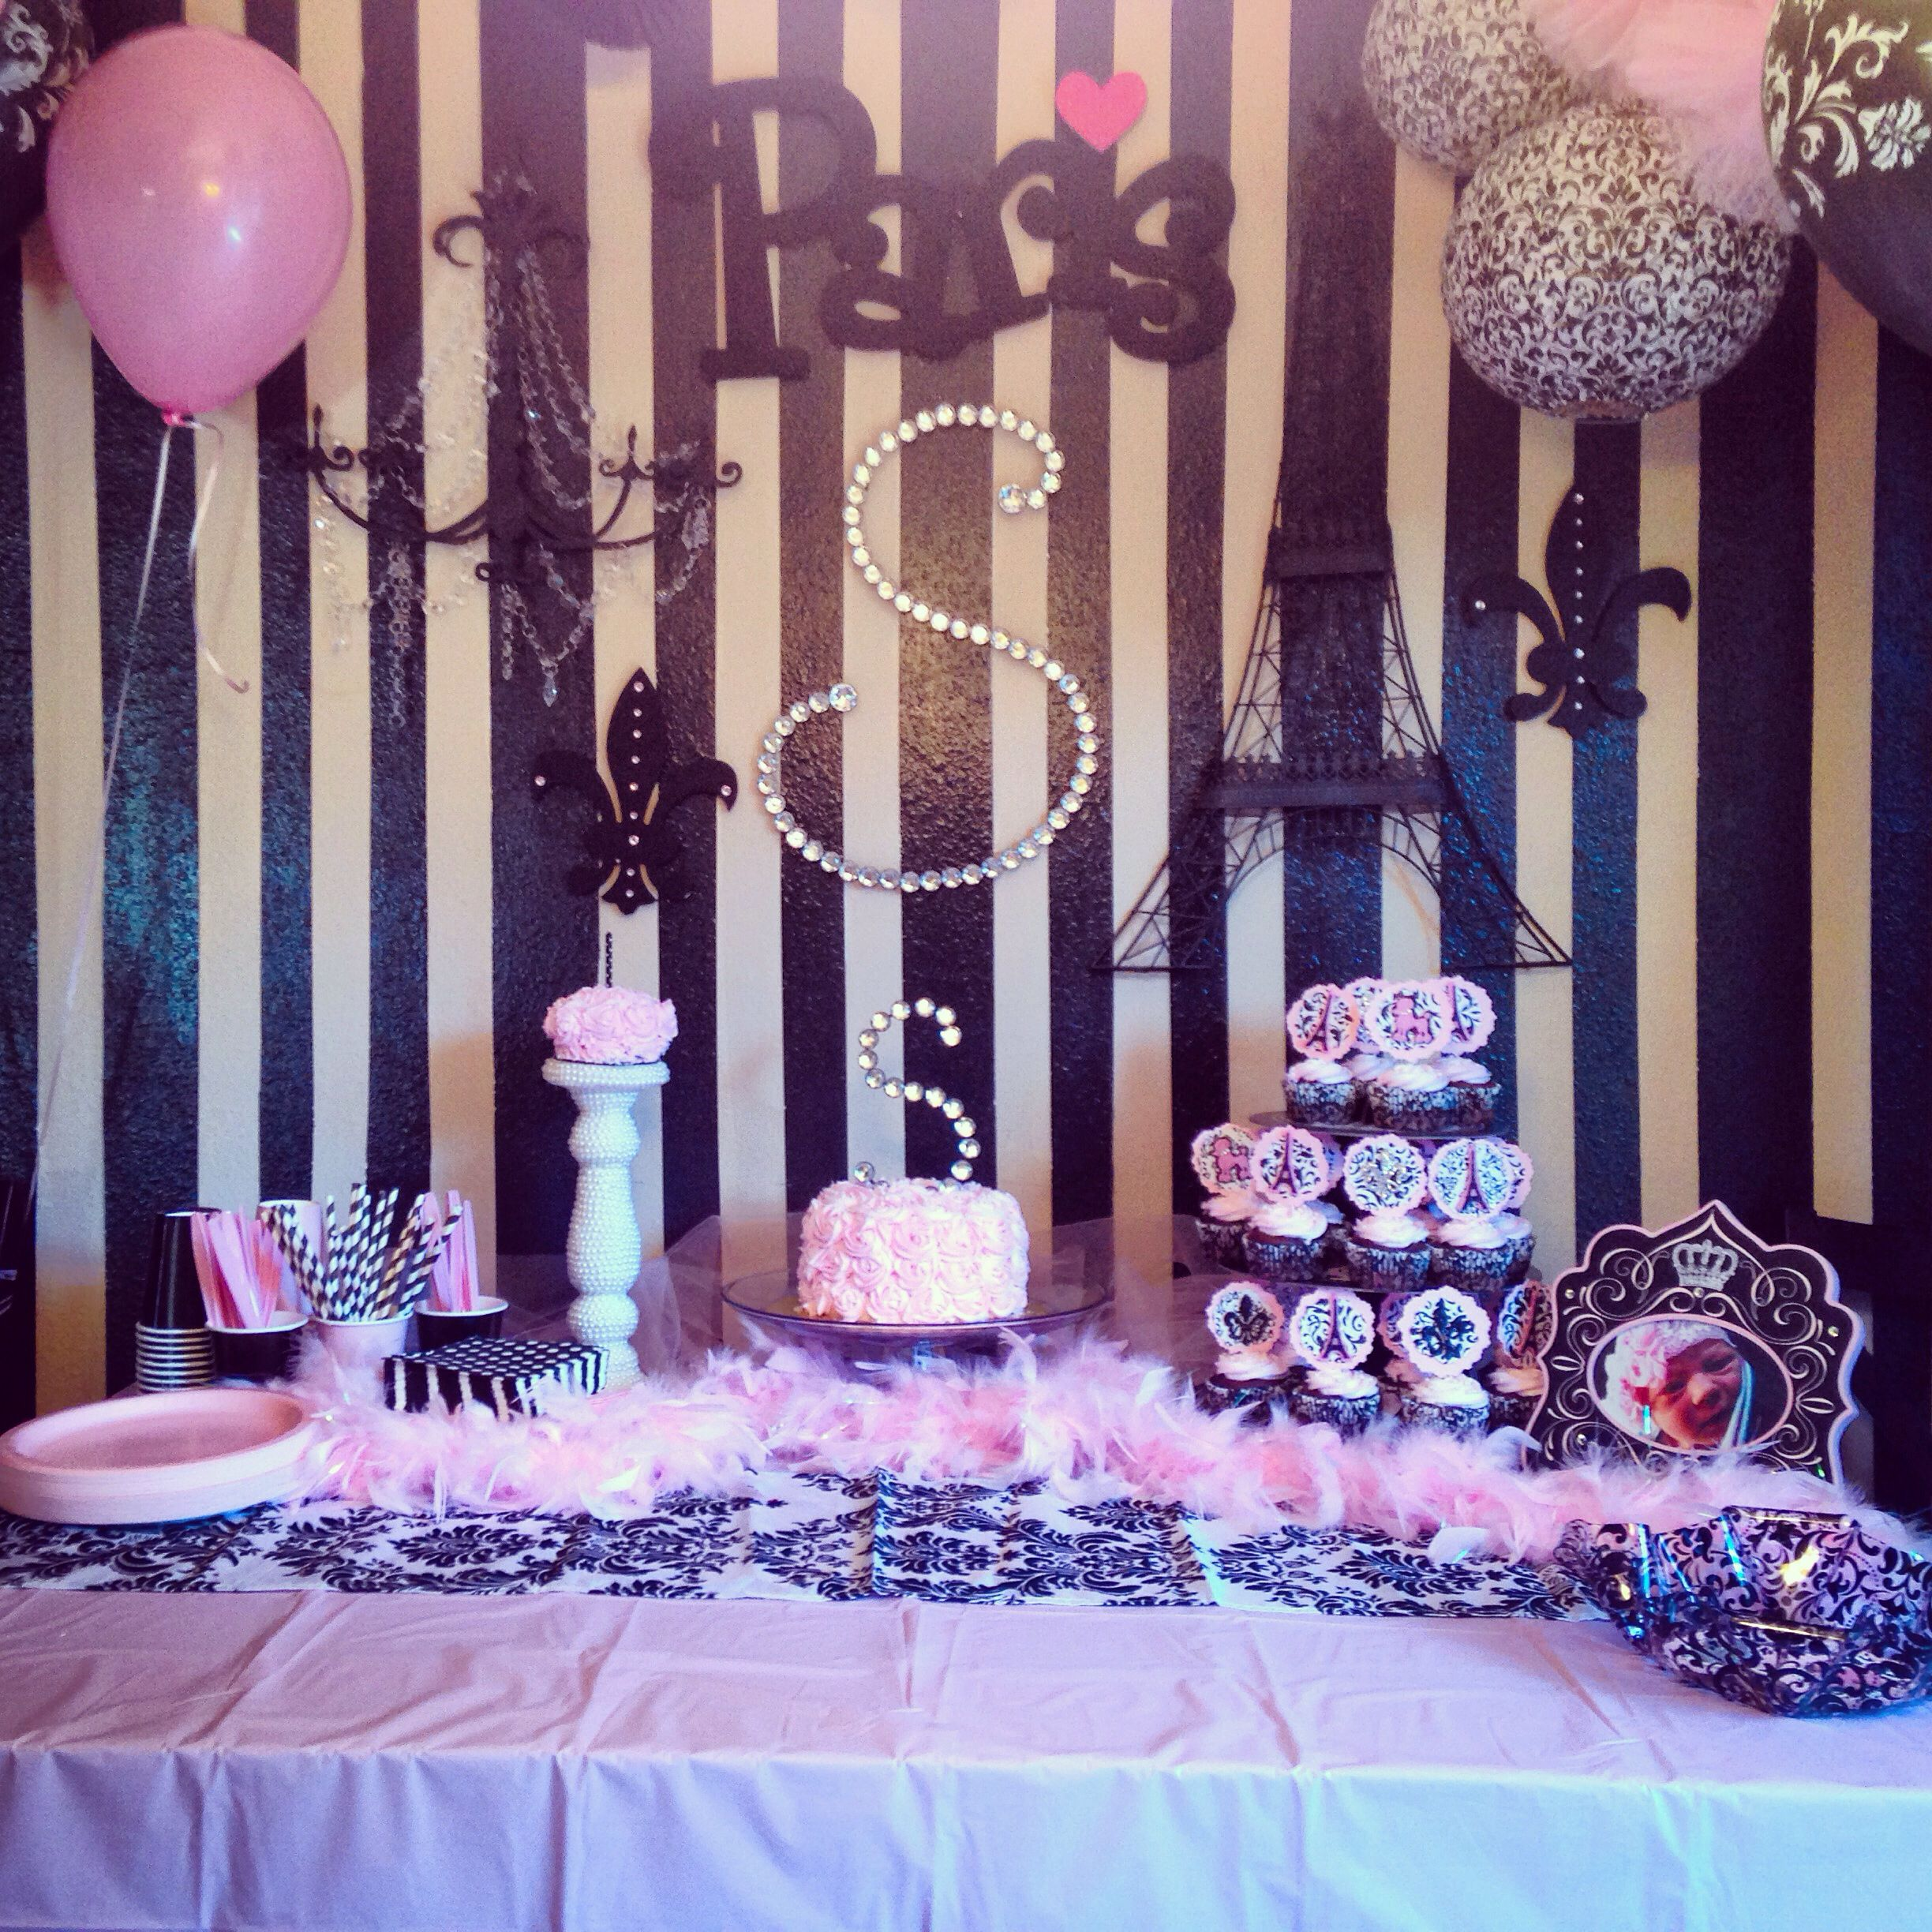 Paris Birthday | Bridal | Pinterest